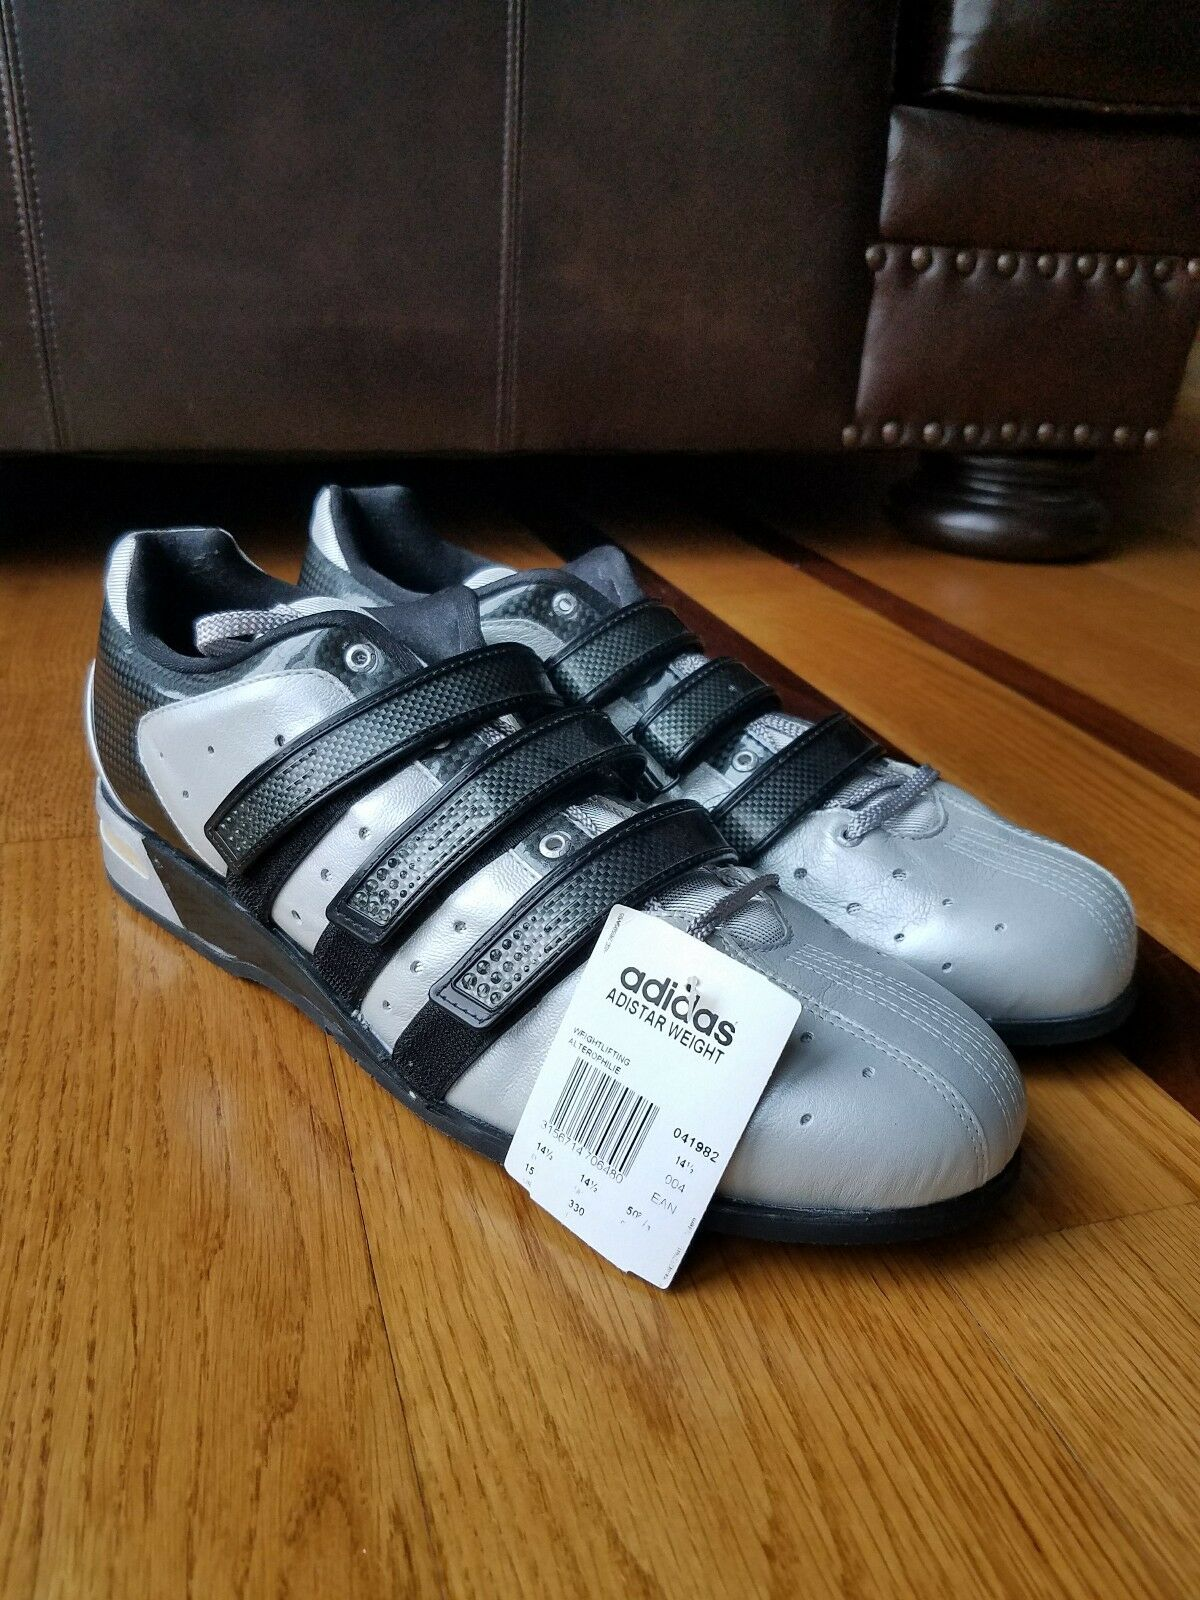 NEW Vintage 2005 Adidas Adistar Olympic  Weightlifting shoes Sz 15 Made Germany  factory outlet store